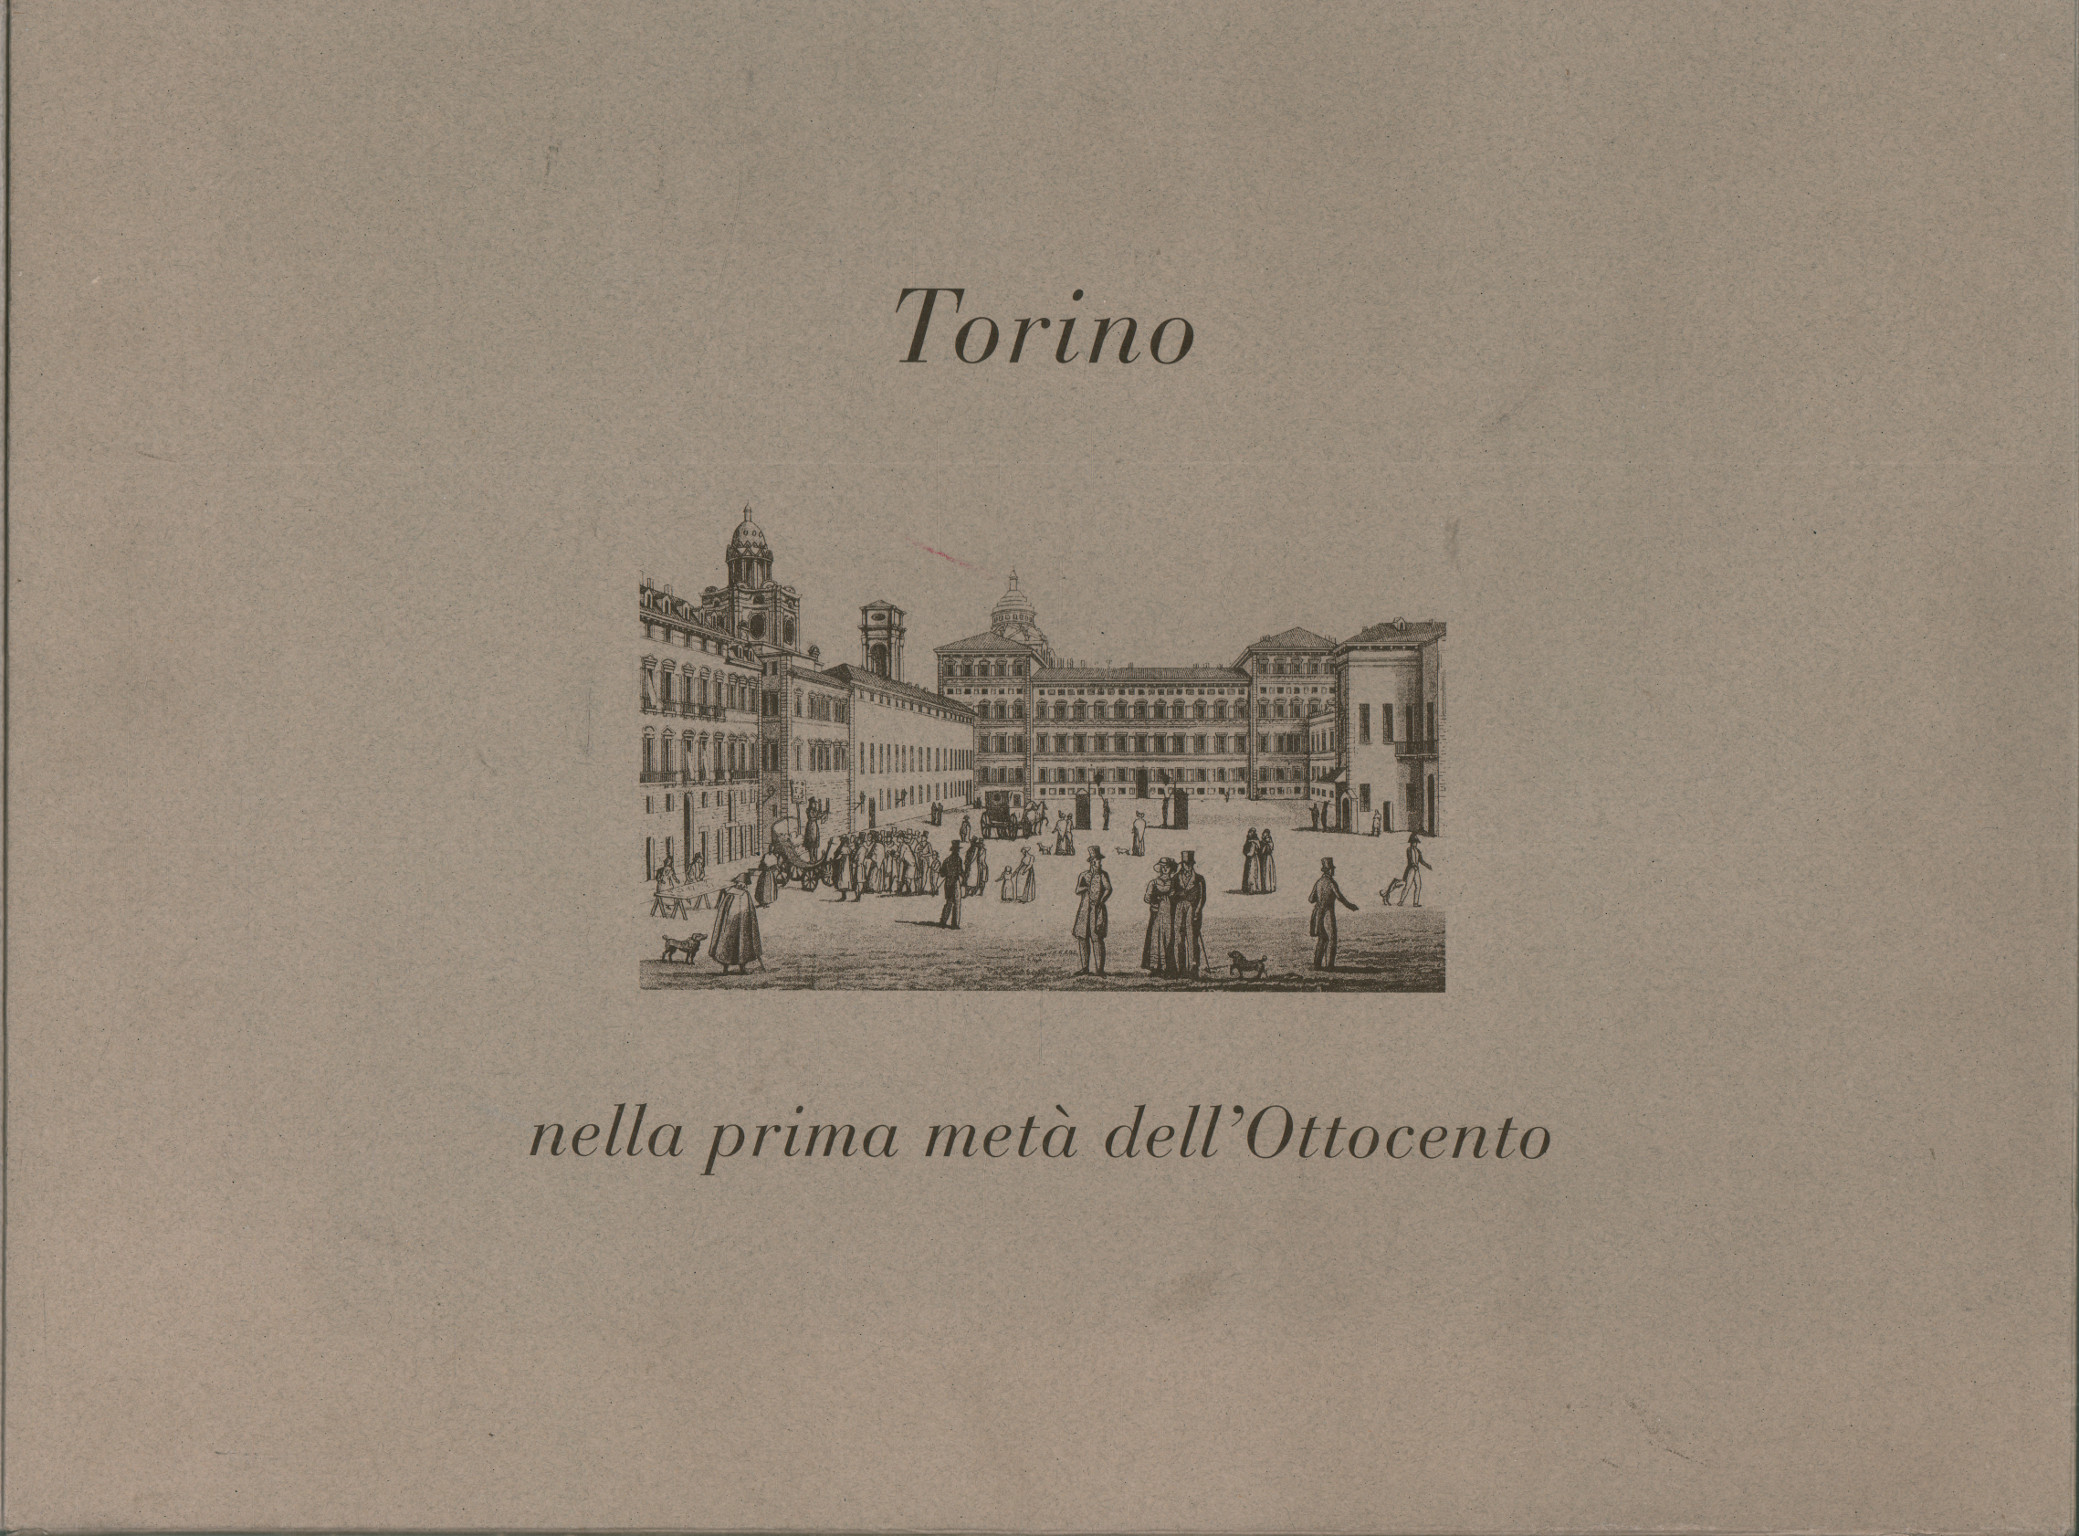 Turin in the first half of the nineteenth century and the vedut, Ada Peyrot